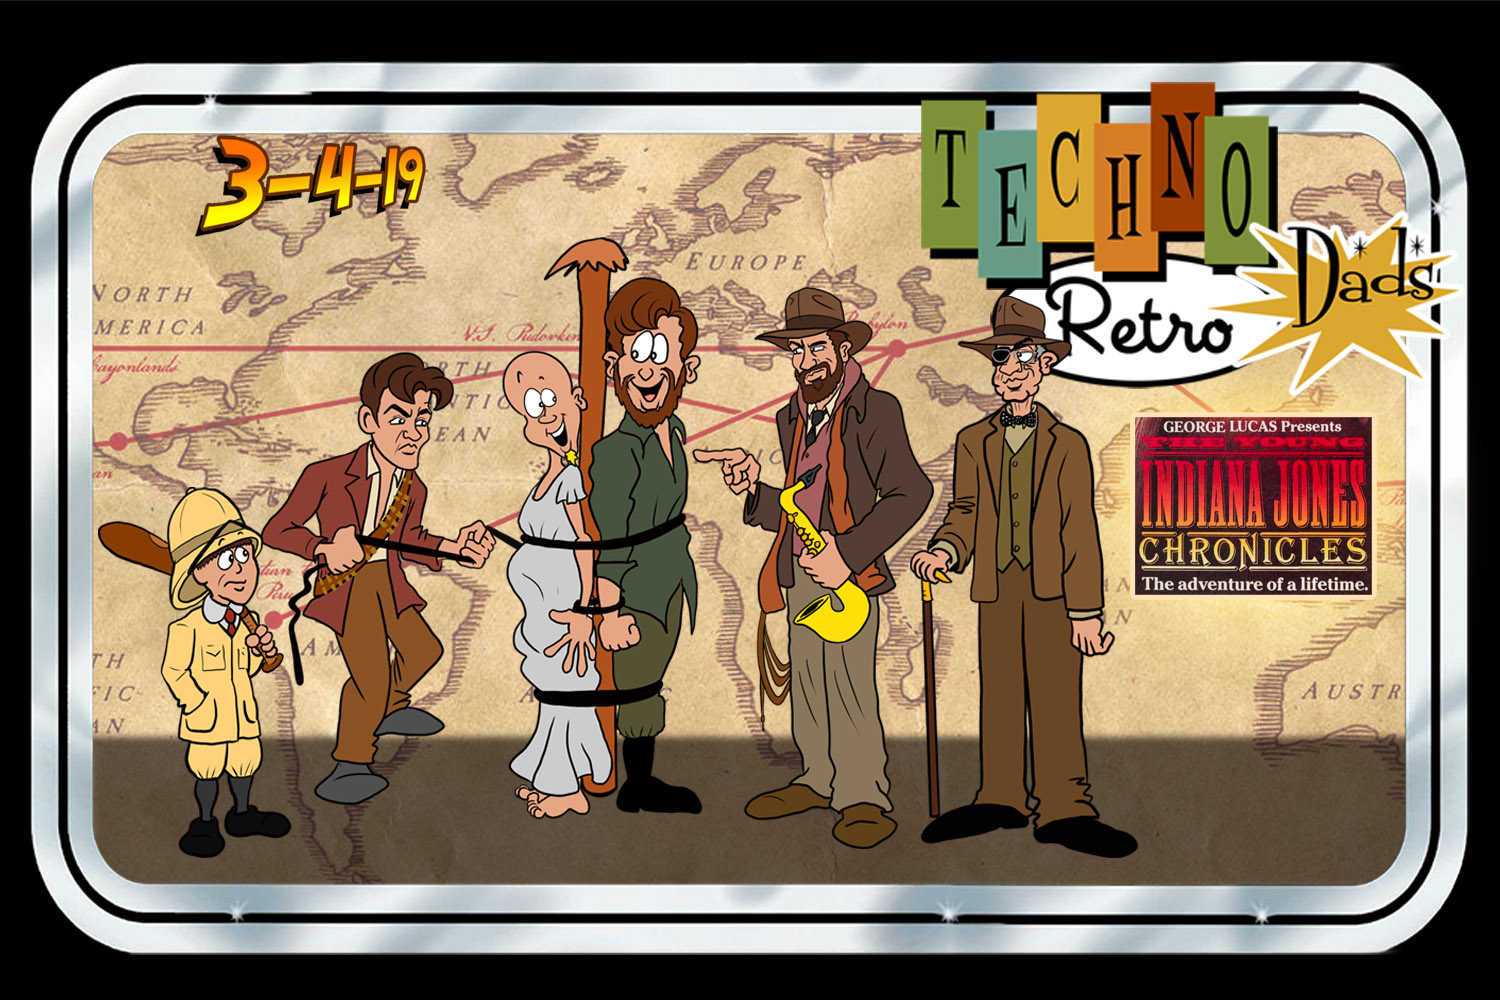 TechnoRetro Dads: High Adventure with Young Indiana Jones and RPGs